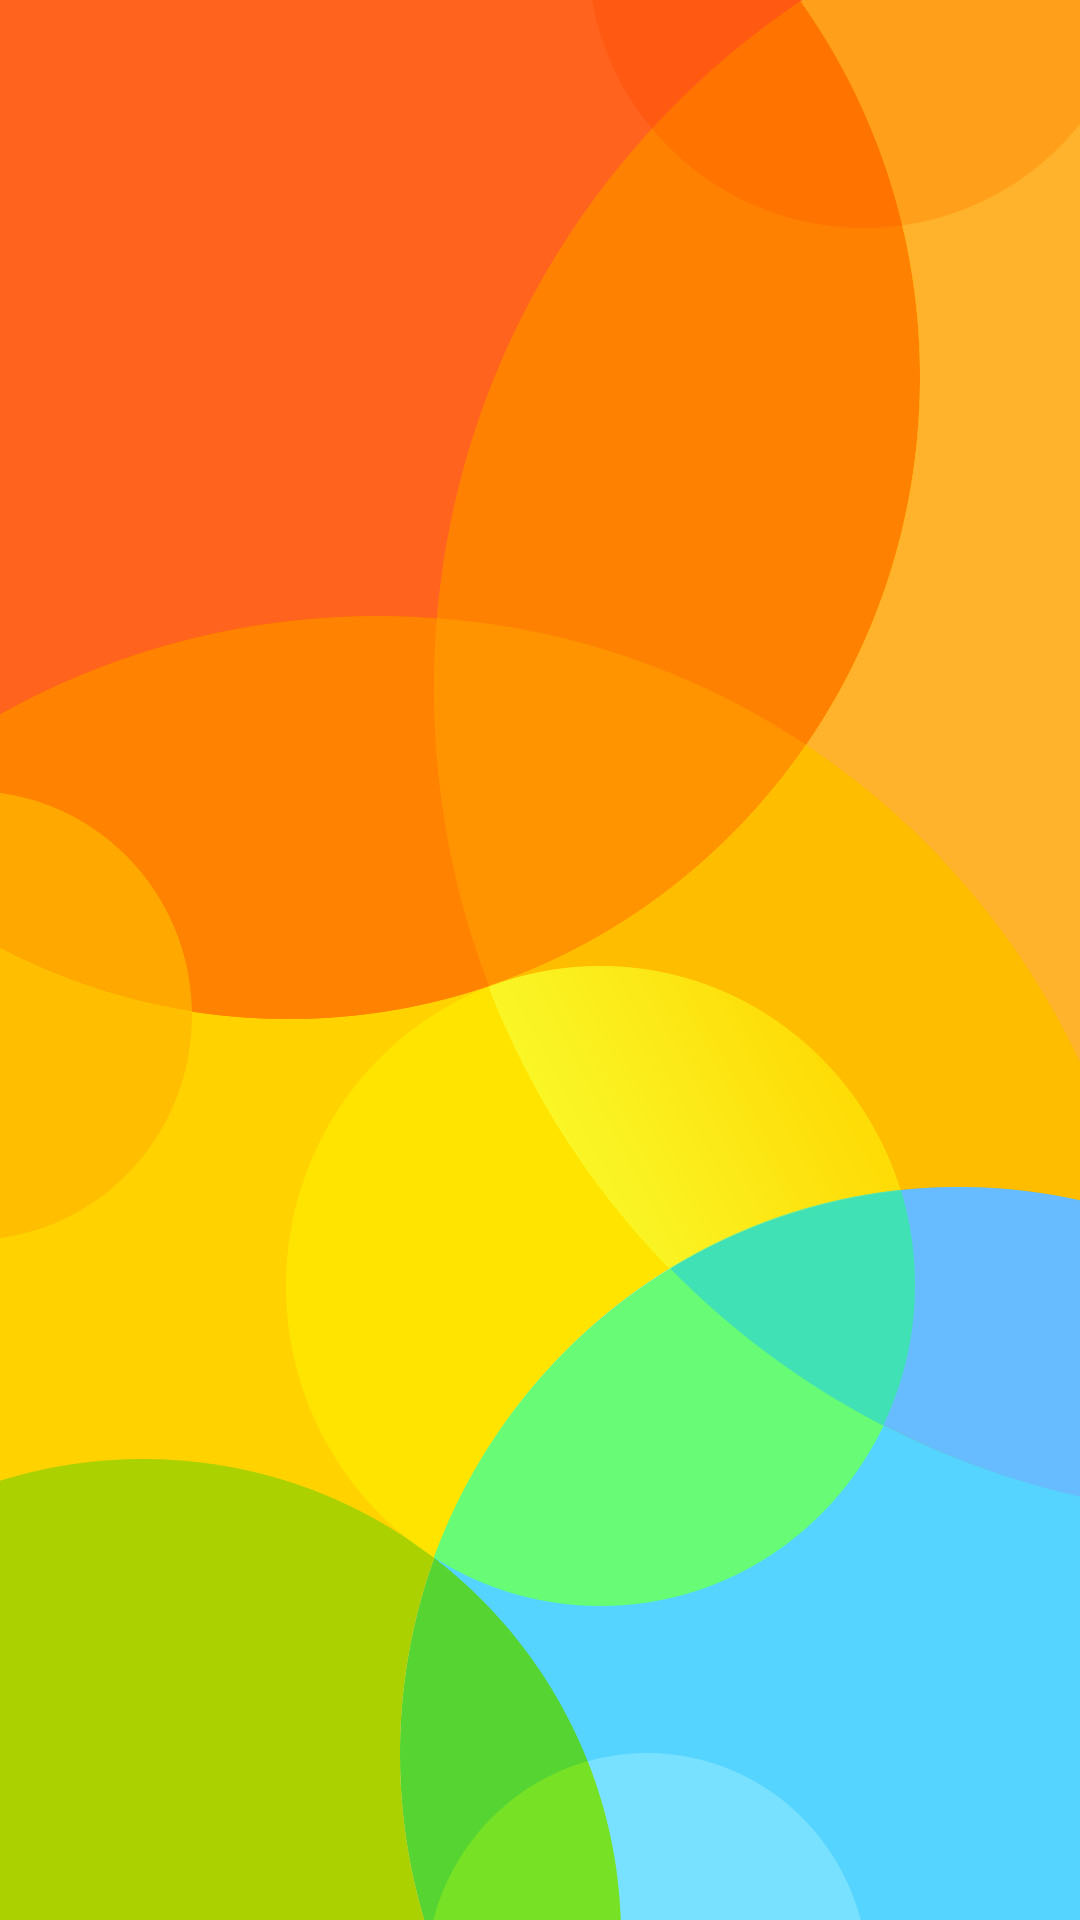 Download Miui 6 Hd Wallpapers For Your Android Phone Details